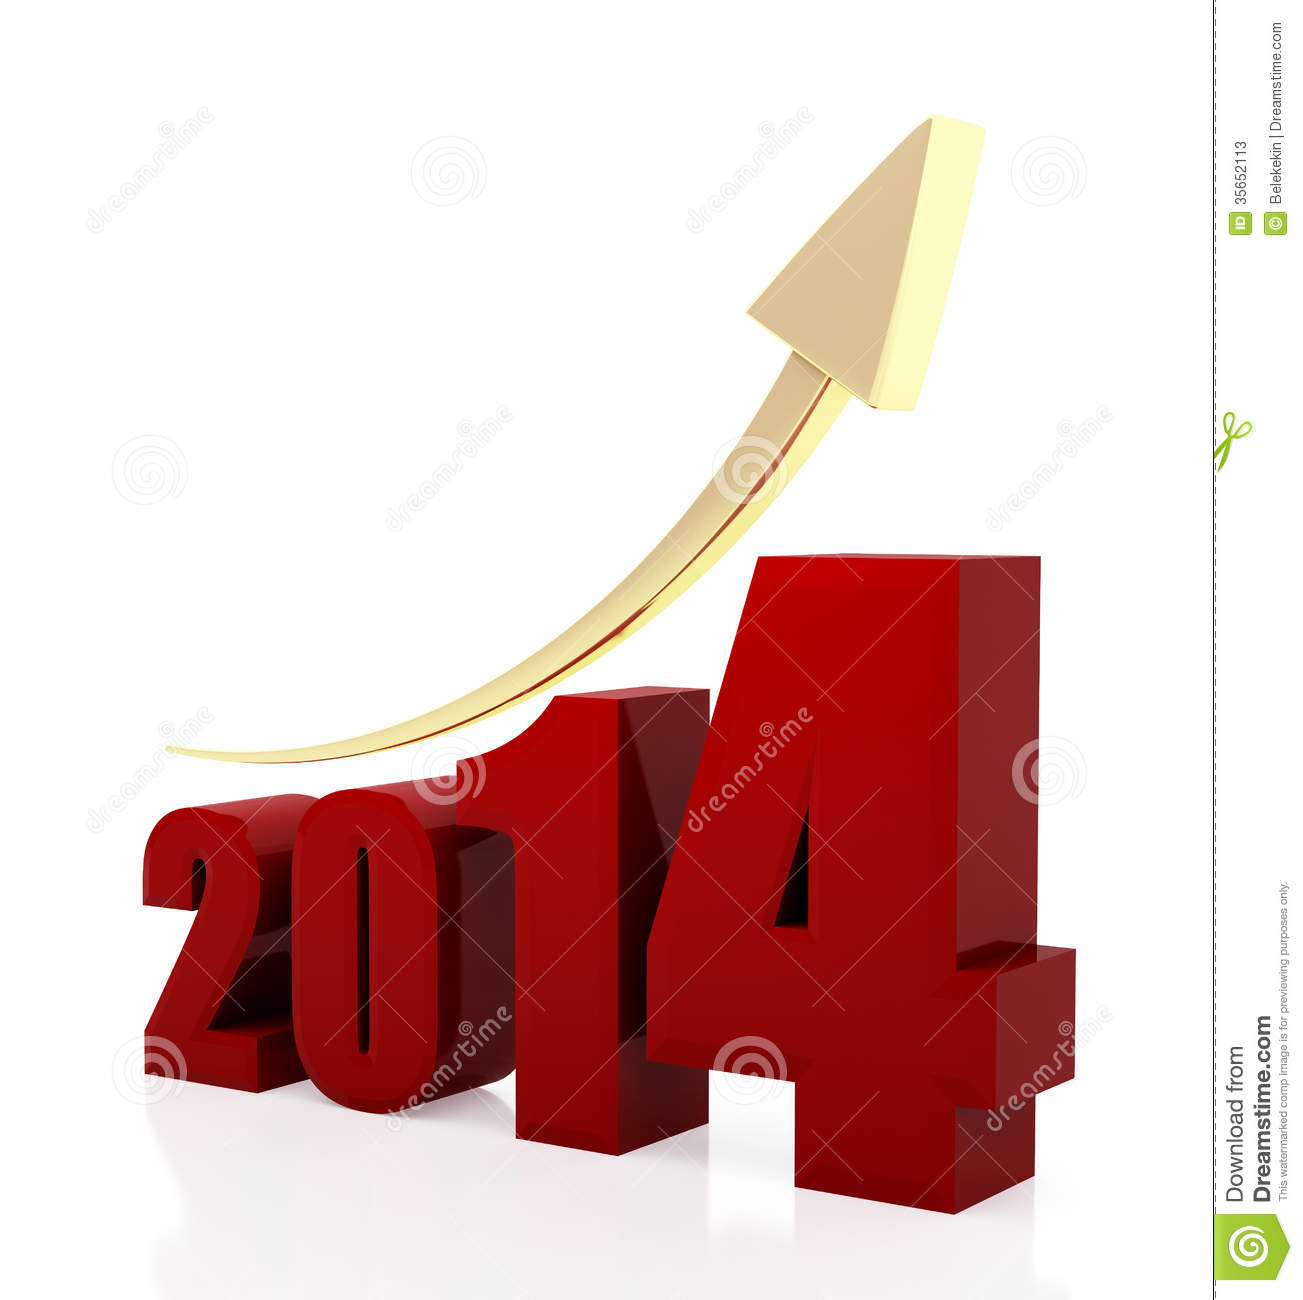 3d rendered illustration of 2014 text and rising arrow